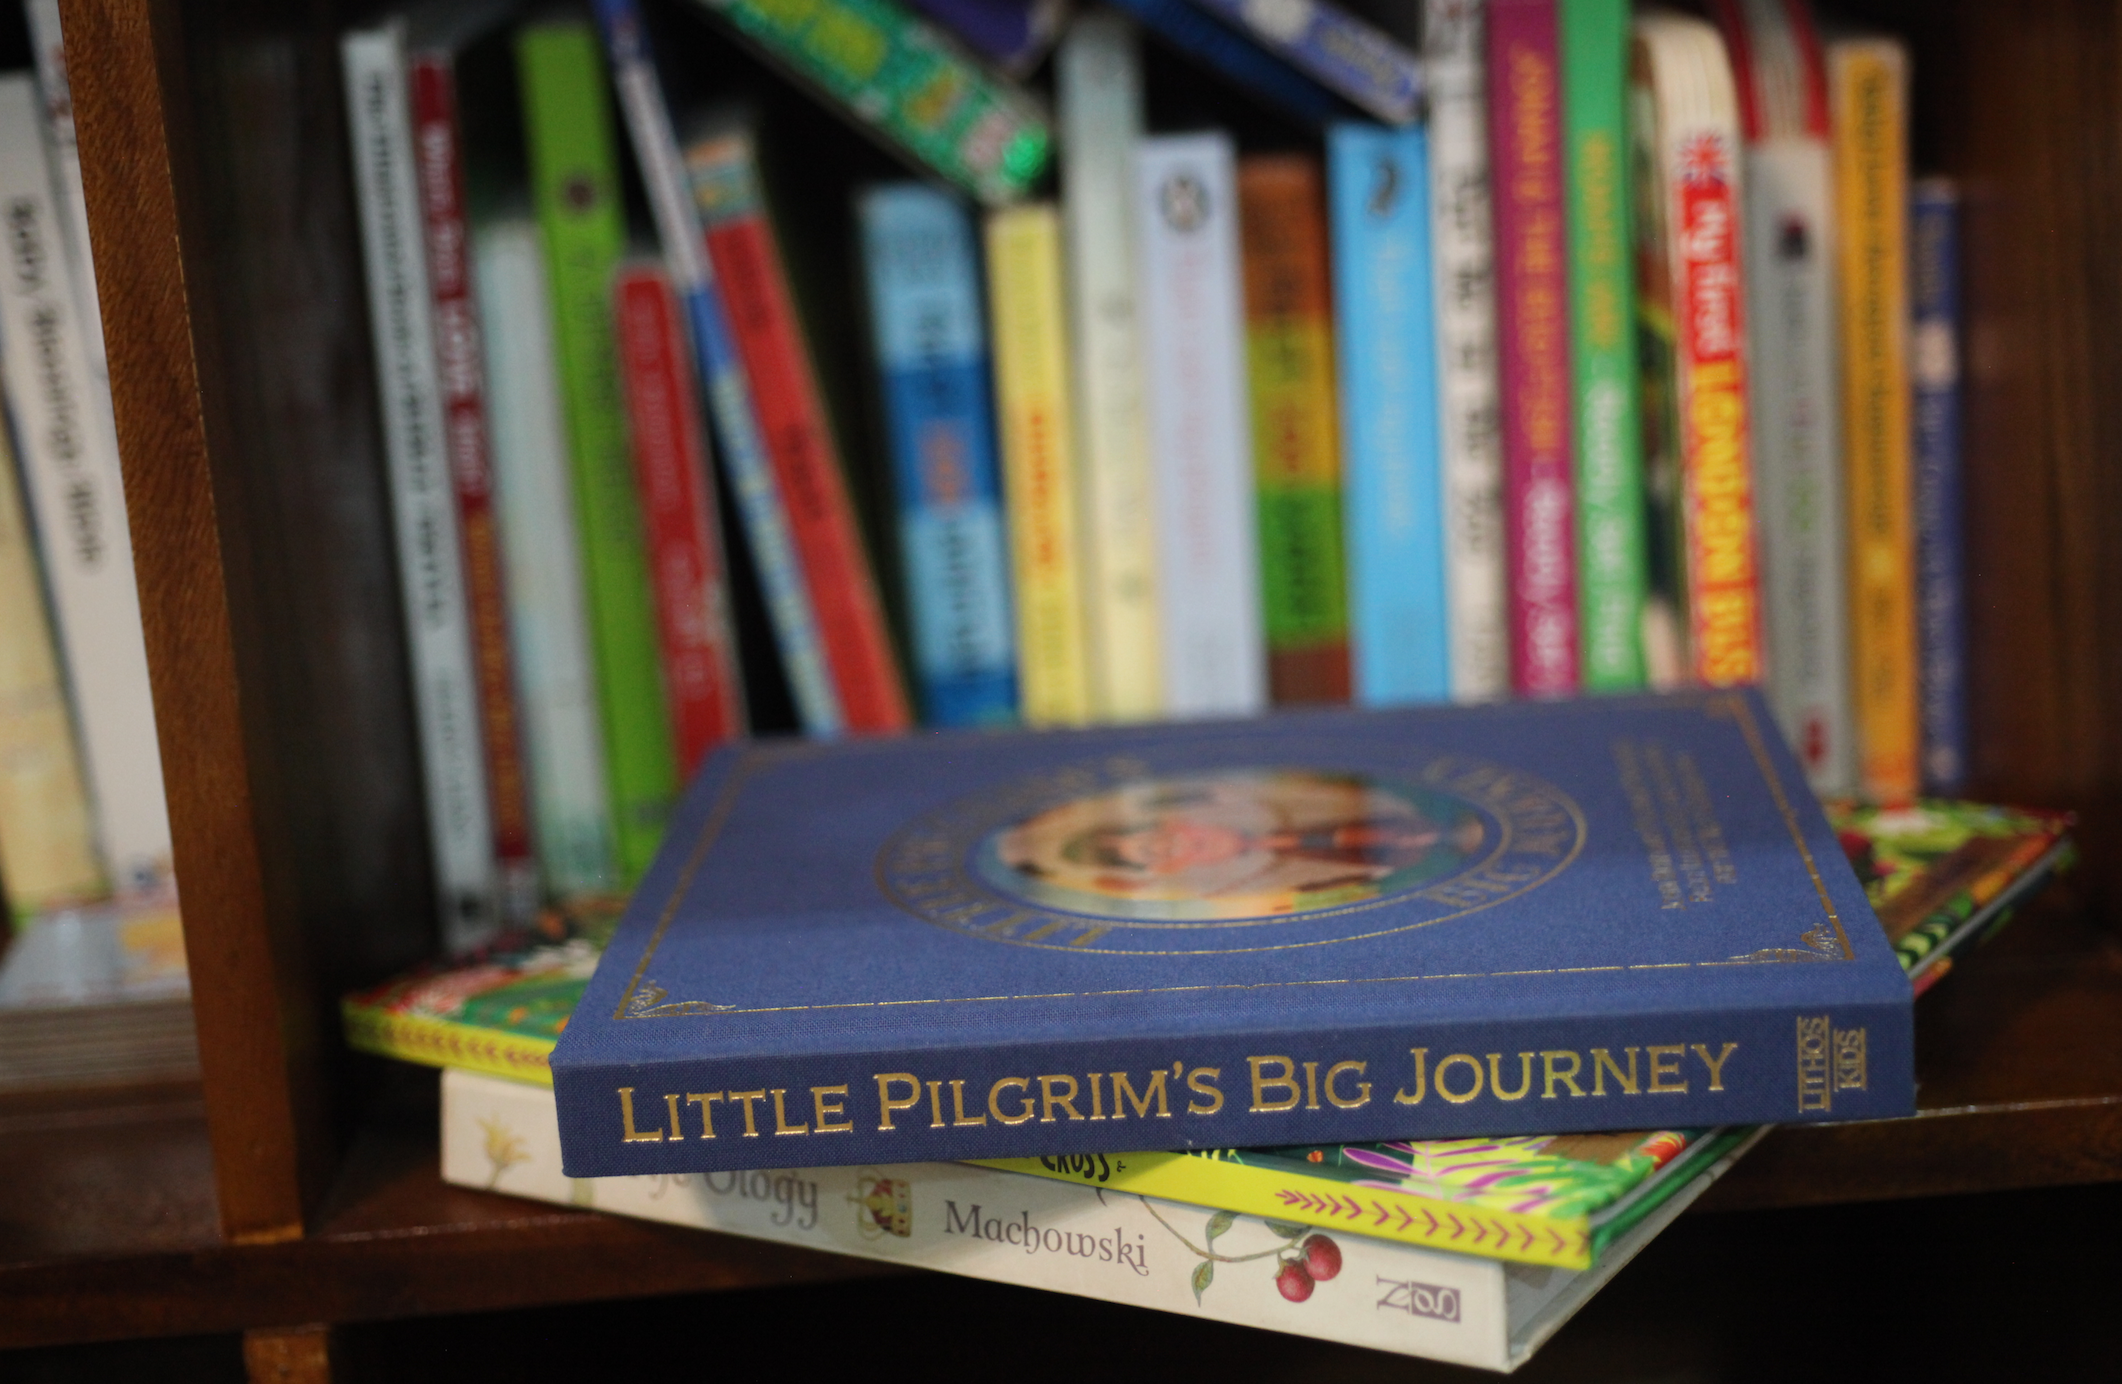 Little Pilgrim's Big Journey